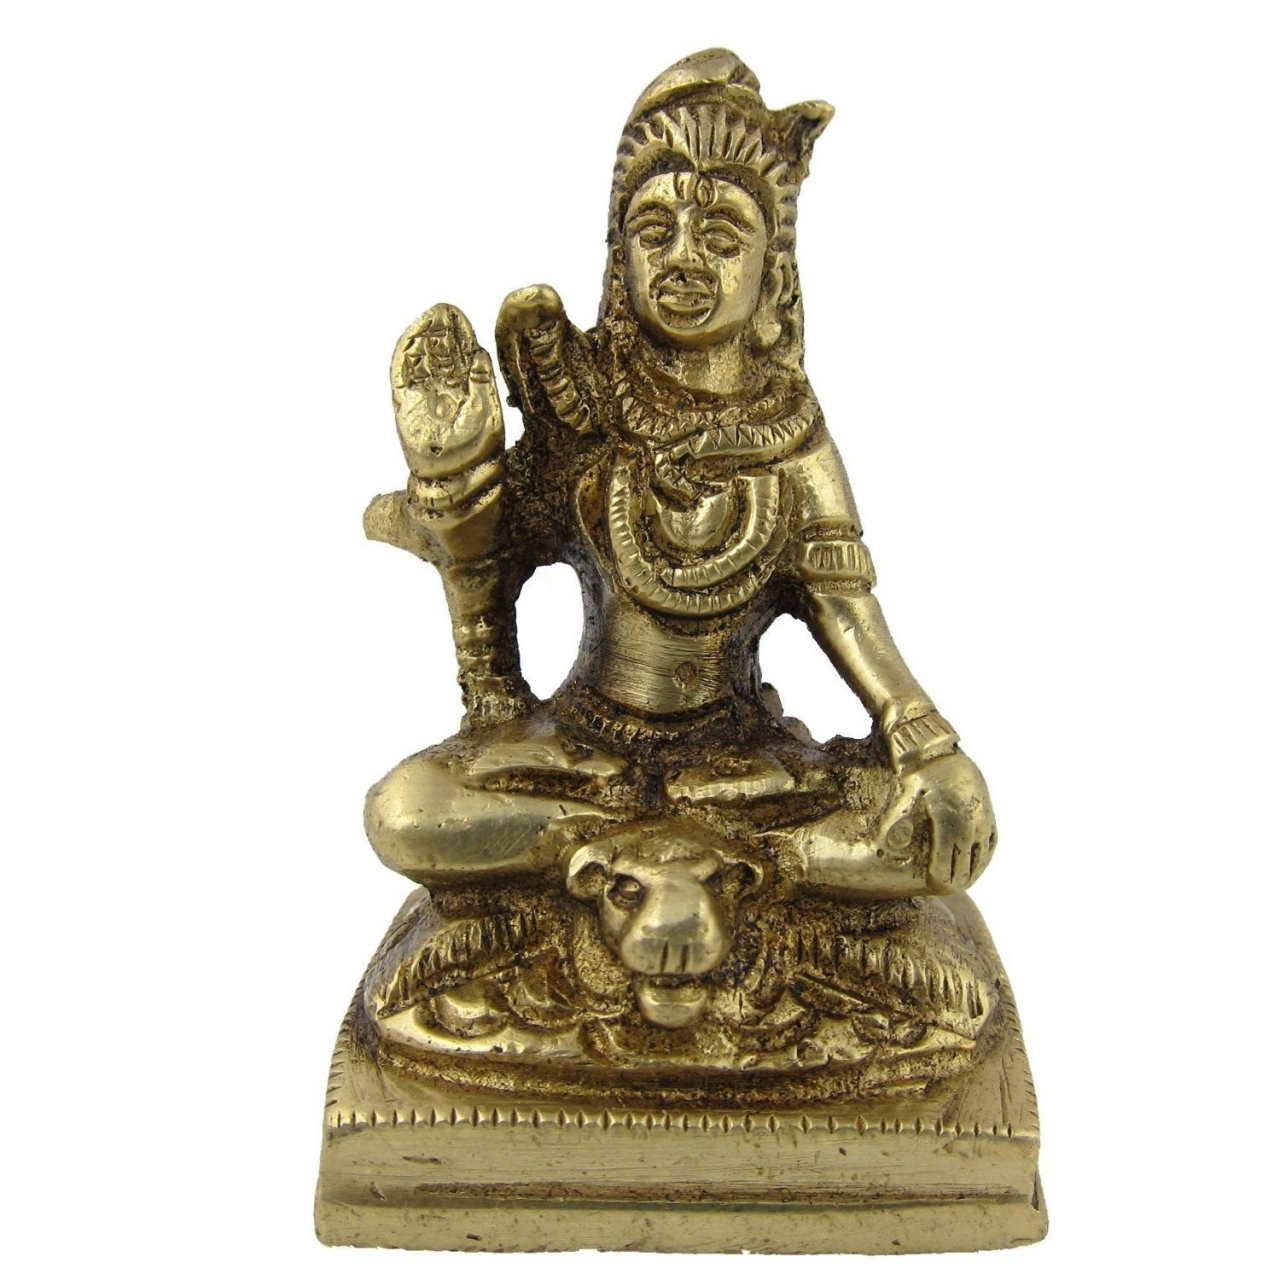 antique brass sculptures shiva statues brass figurine hindu gods ts idea 1 75 of antique brass sculptures